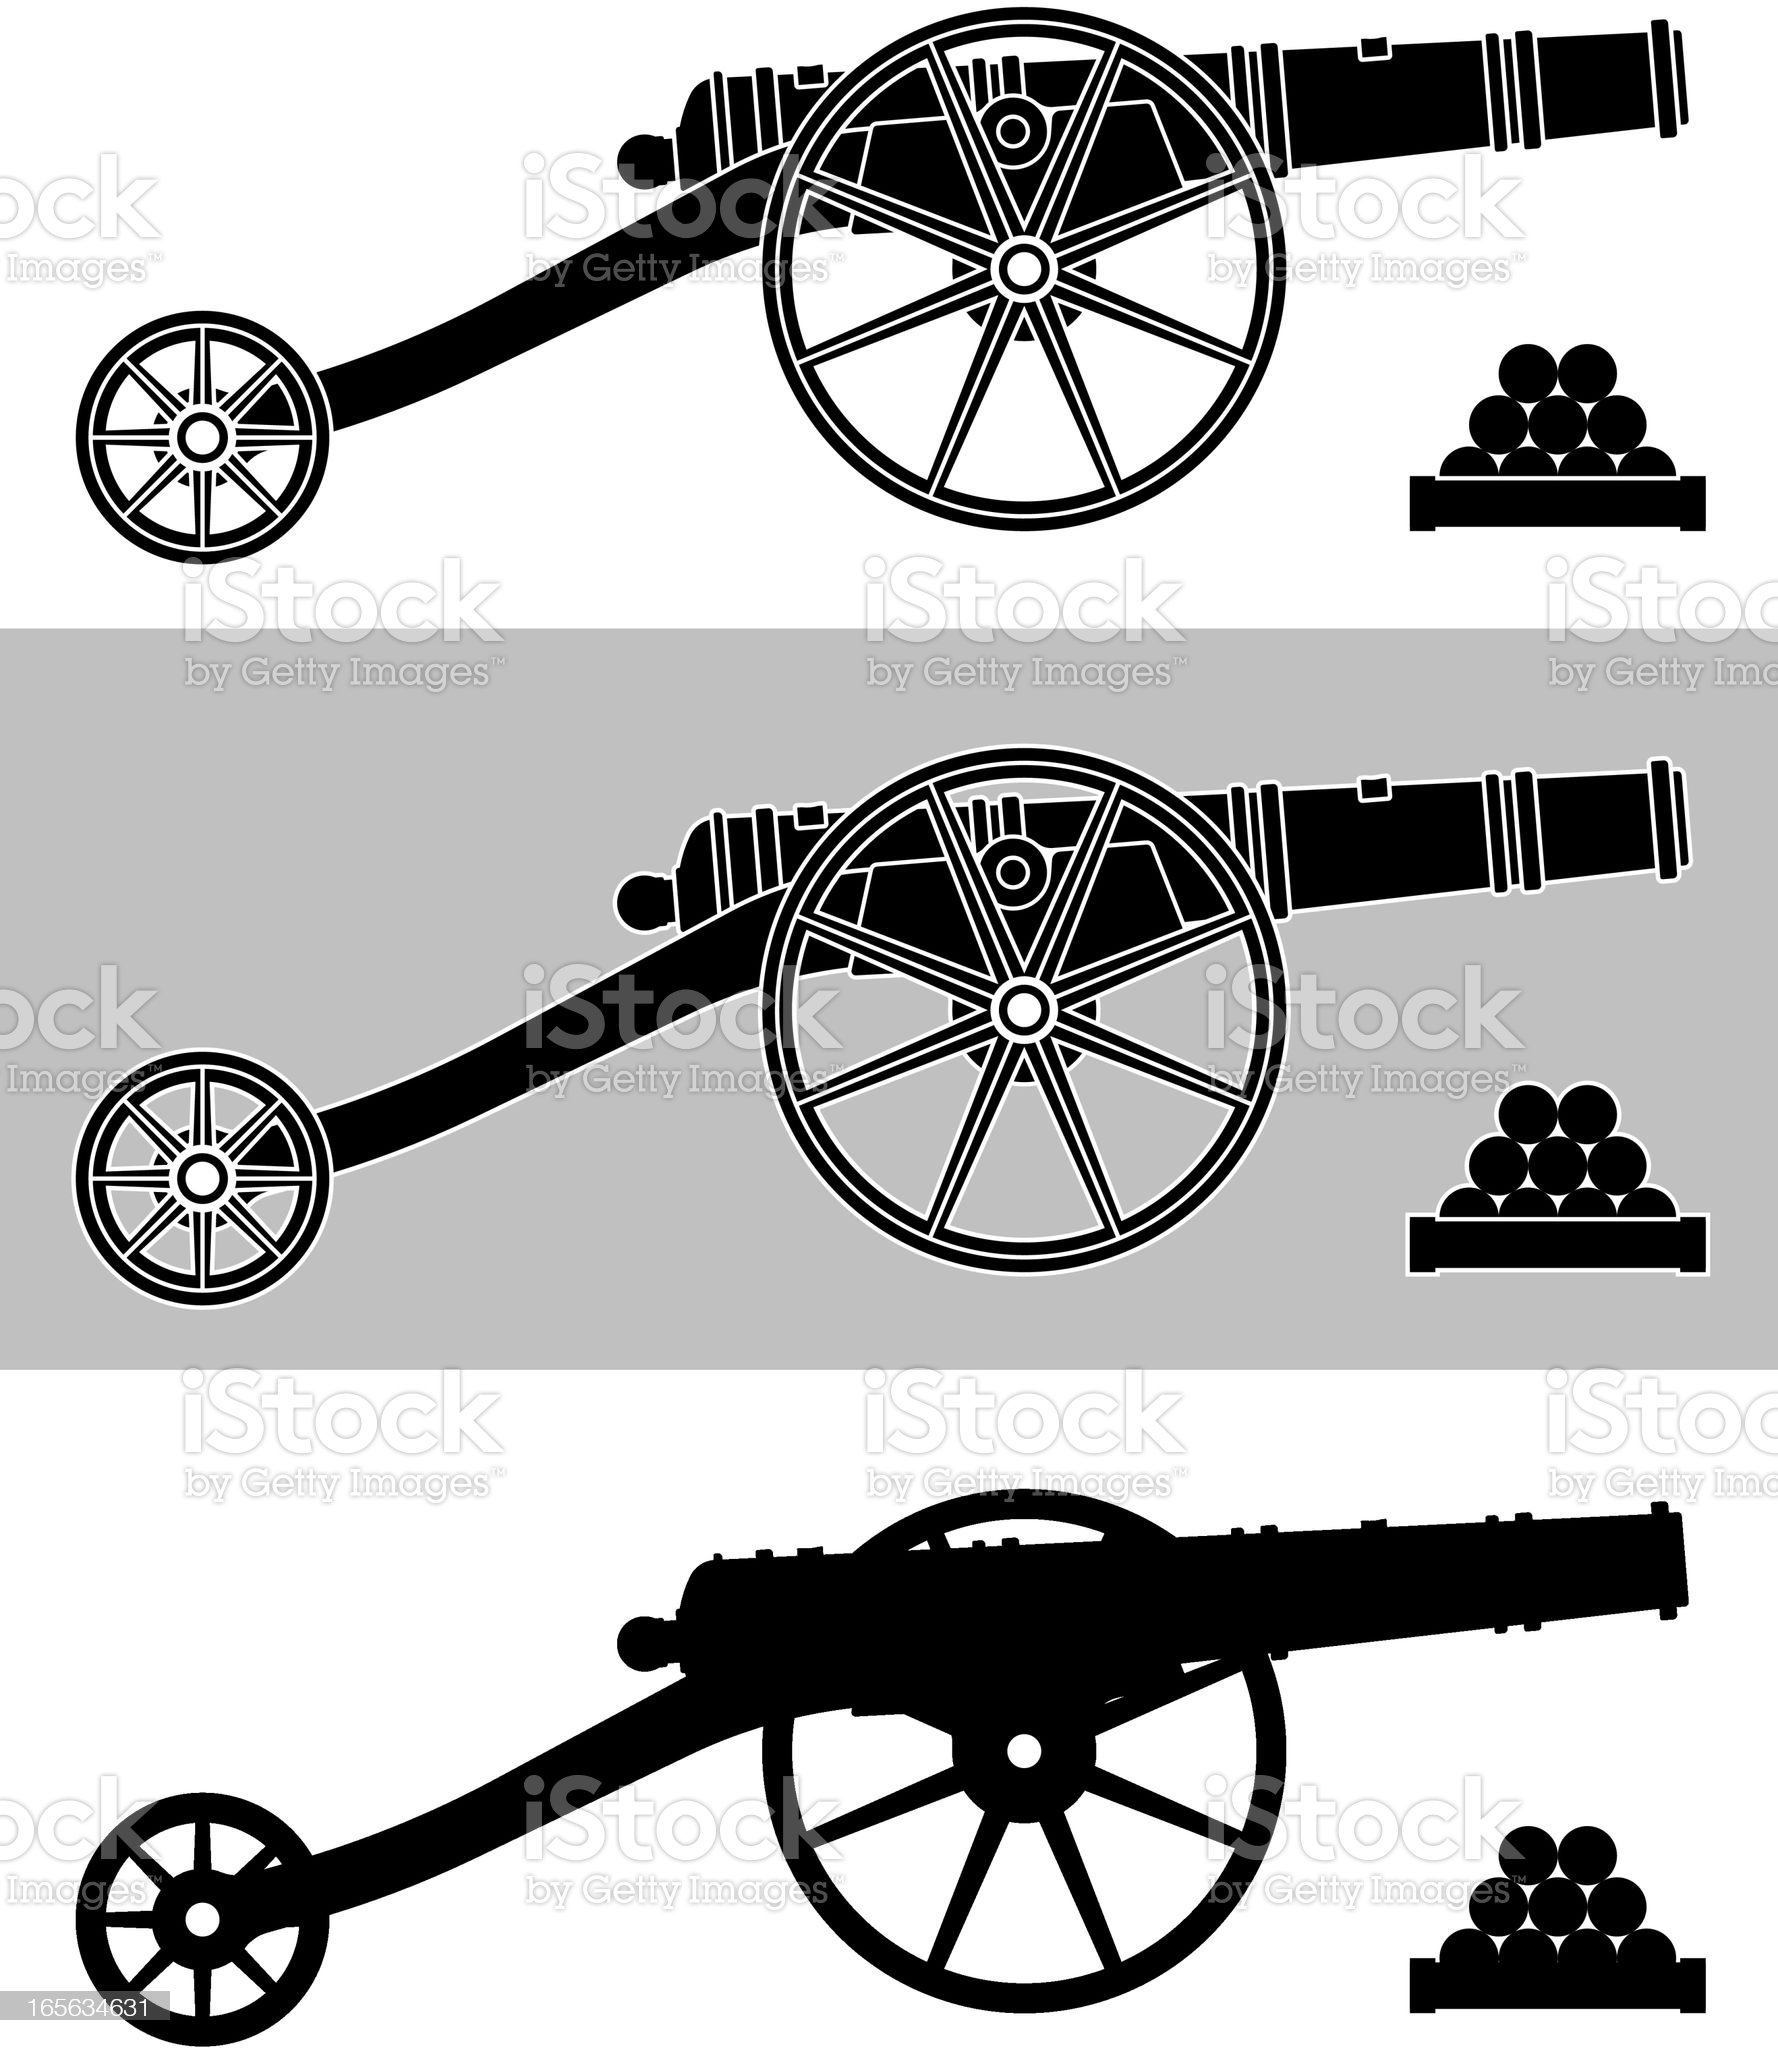 cannon silhouette royalty-free stock vector art